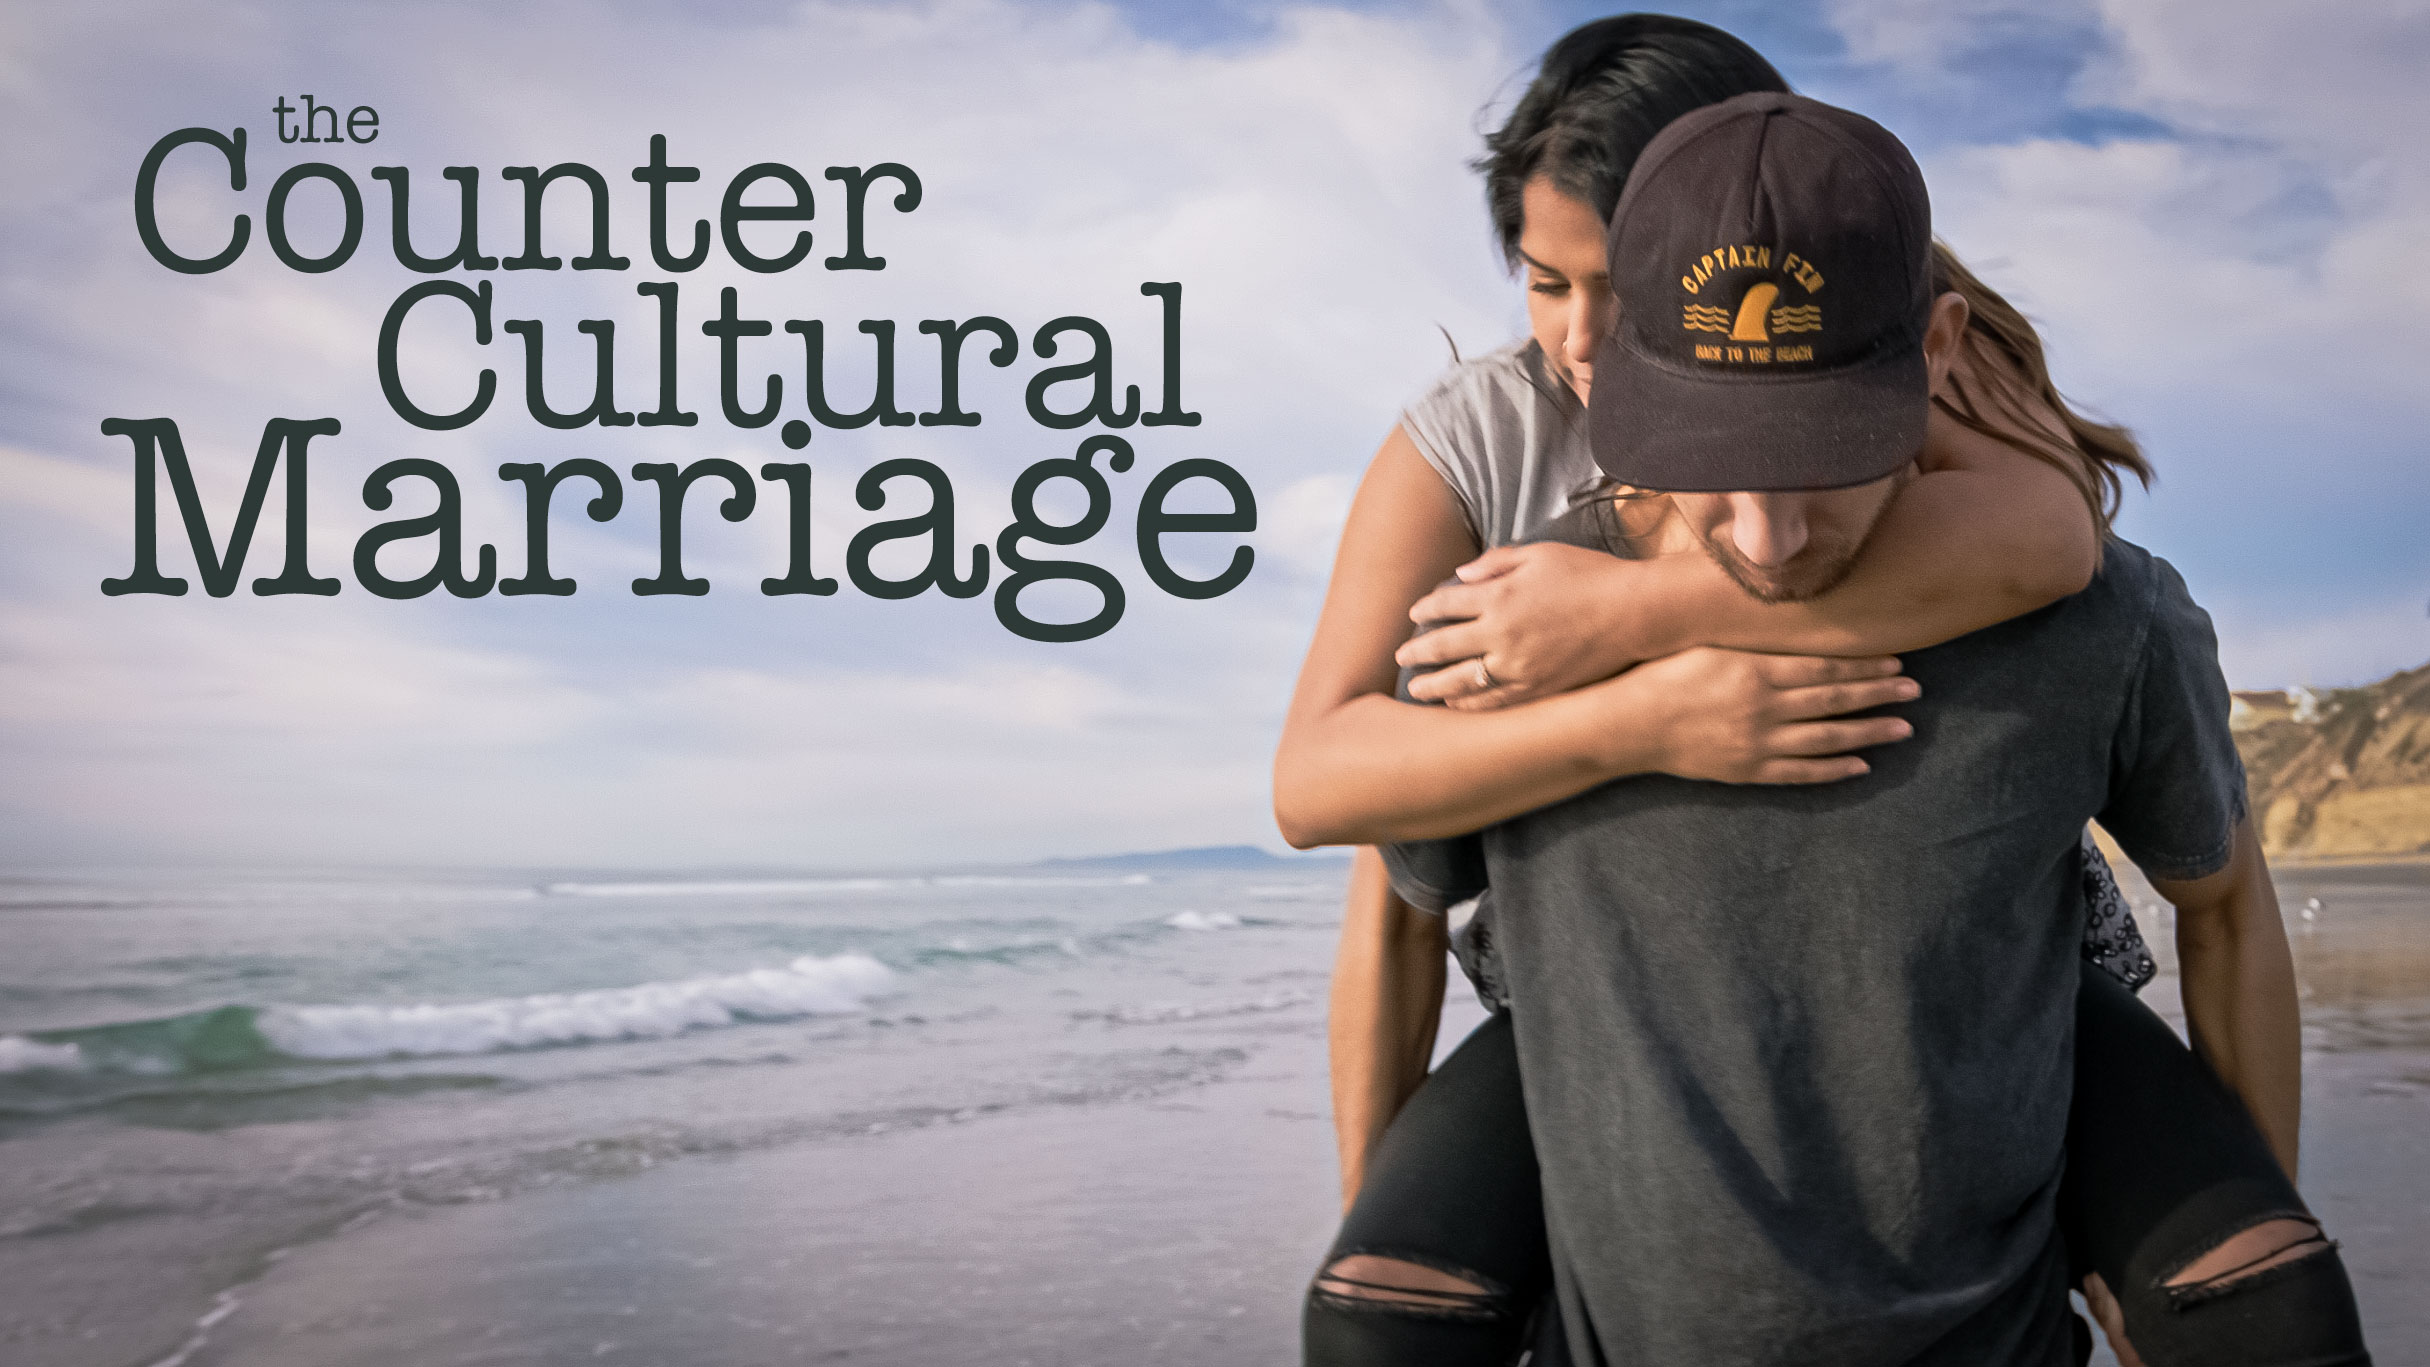 The Counter Cultural Marriage  Image